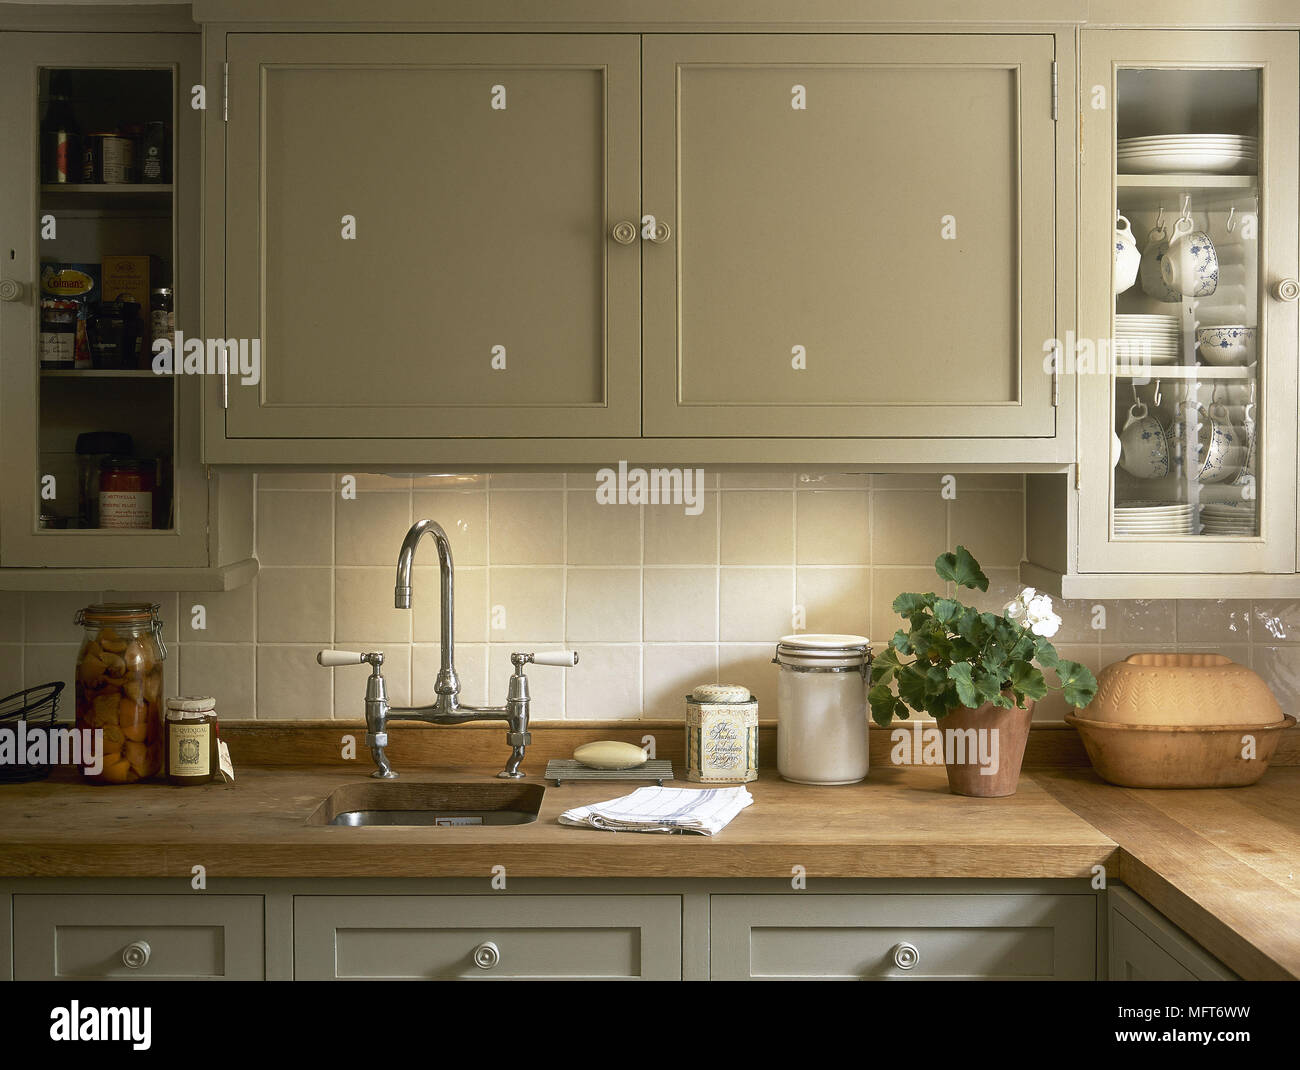 Interiors Traditional Green Kitchens Imágenes De Stock & Interiors ...